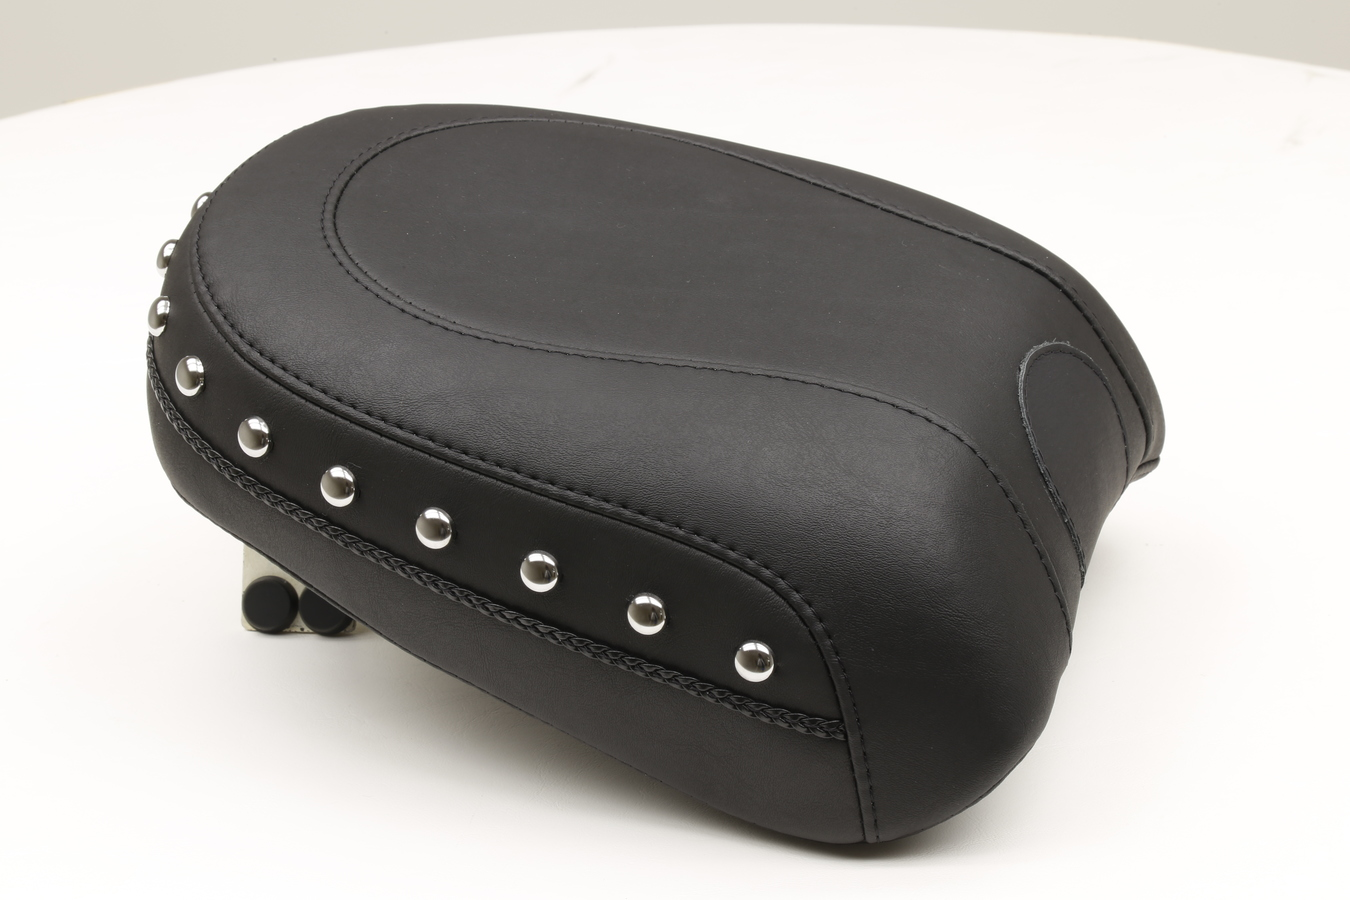 Recessed Passenger Seat for H-D Wide Touring, Chrome Studded, Black, Width: 8""